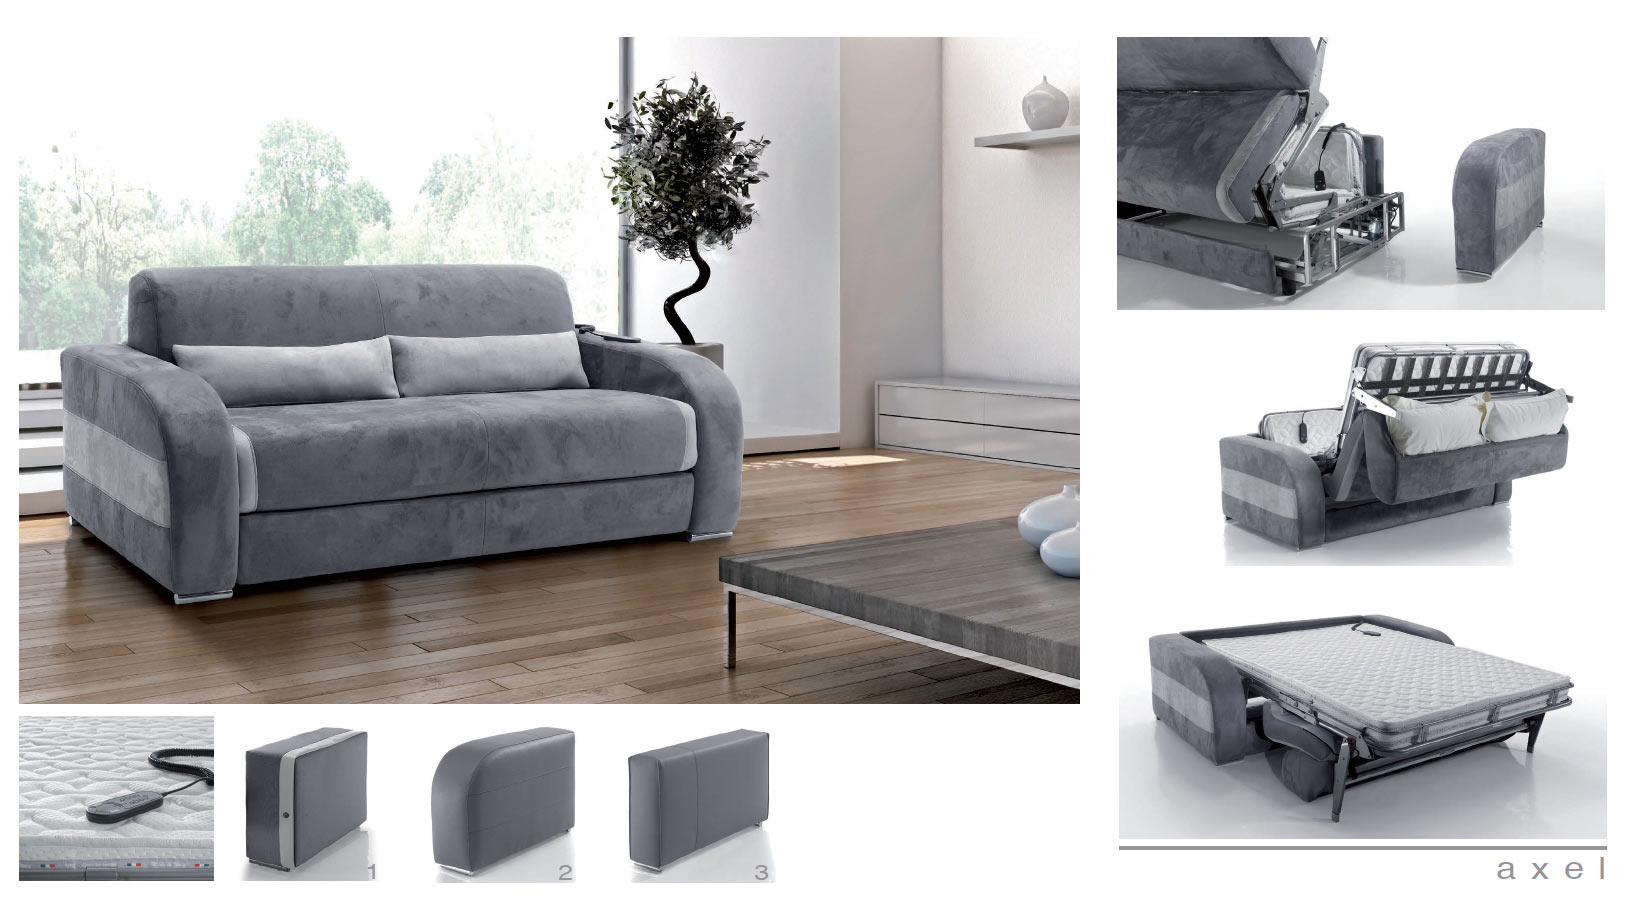 canap lit rapido lectrique axel par verysofa rapido convertible. Black Bedroom Furniture Sets. Home Design Ideas